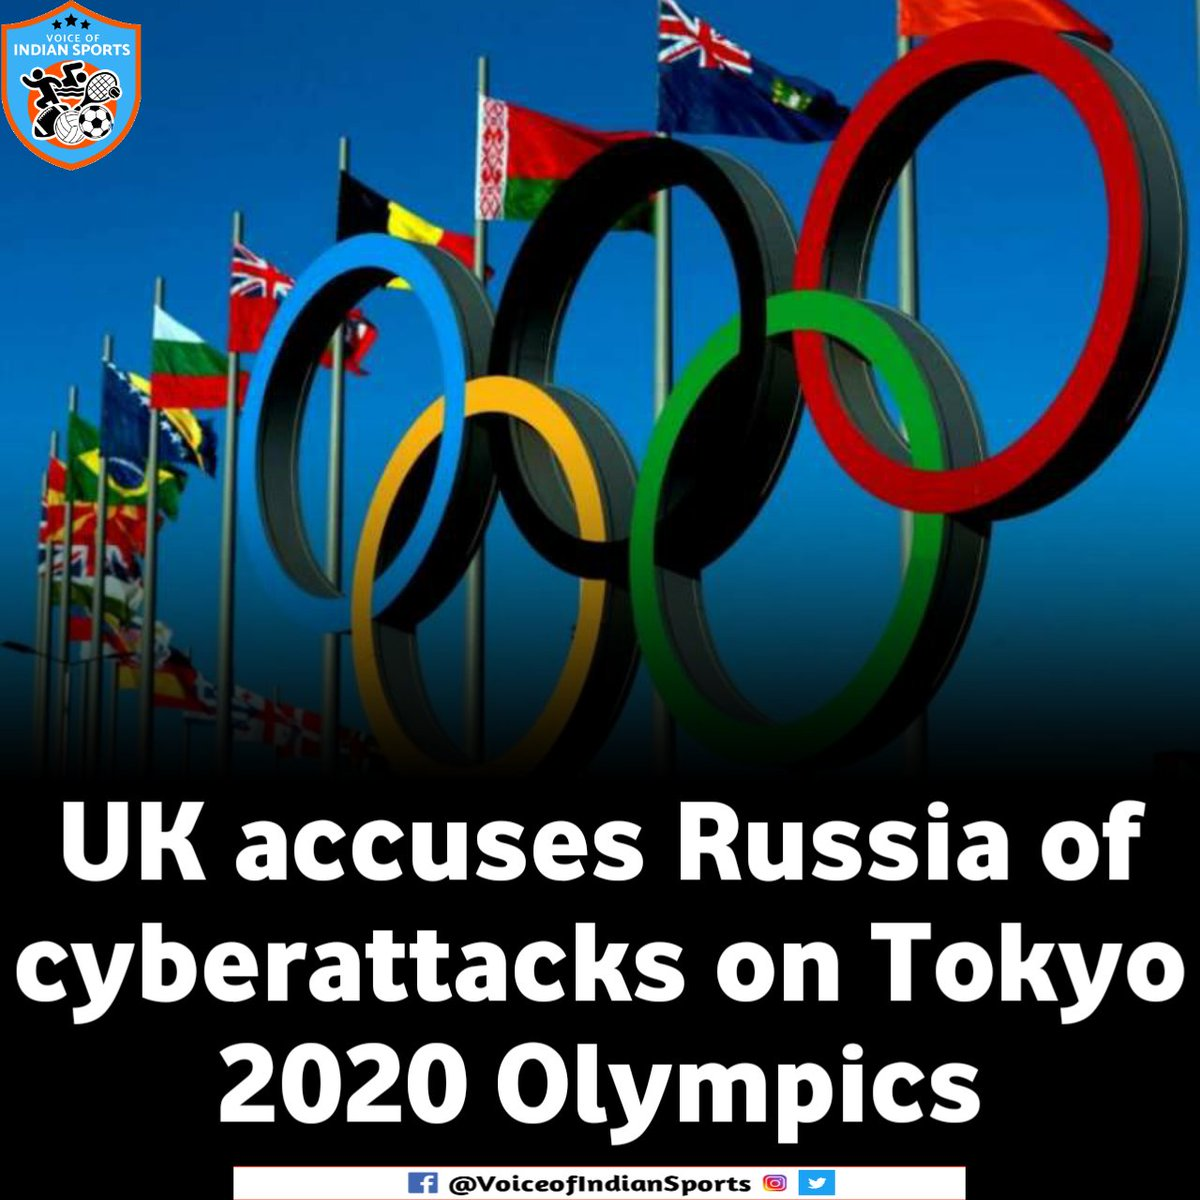 The UK has accused Russia of carrying out a series of cyberattacks on the 2020 Summer Olympics in Tokyo -- scheduled to take place in Tokyo in July, 2020 but was postponed due to the coronavirus pandemic.  #Olympics https://t.co/SnZgsy4y57